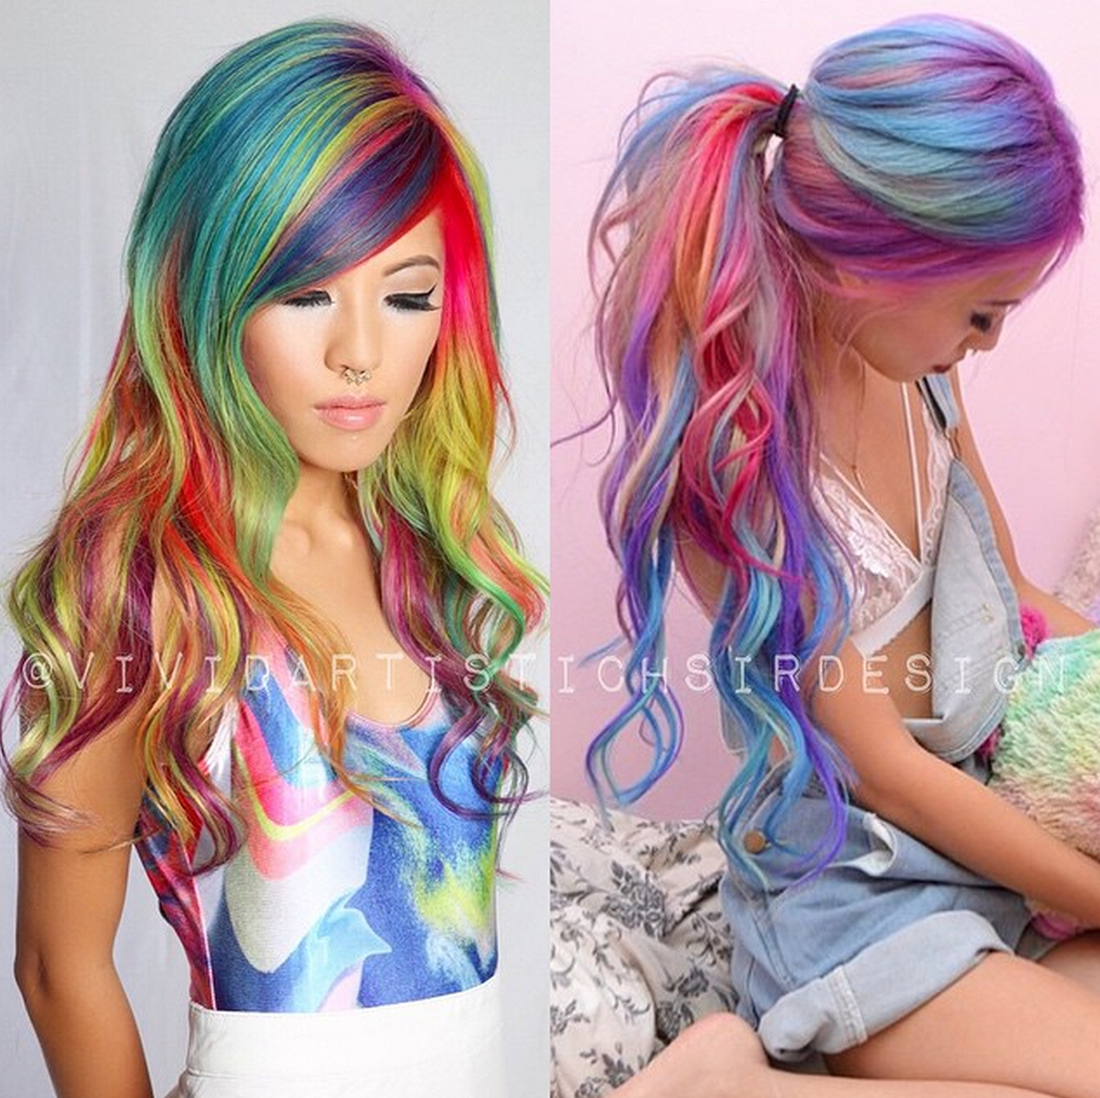 sand art hair is the new hair color trend you need to try | sand